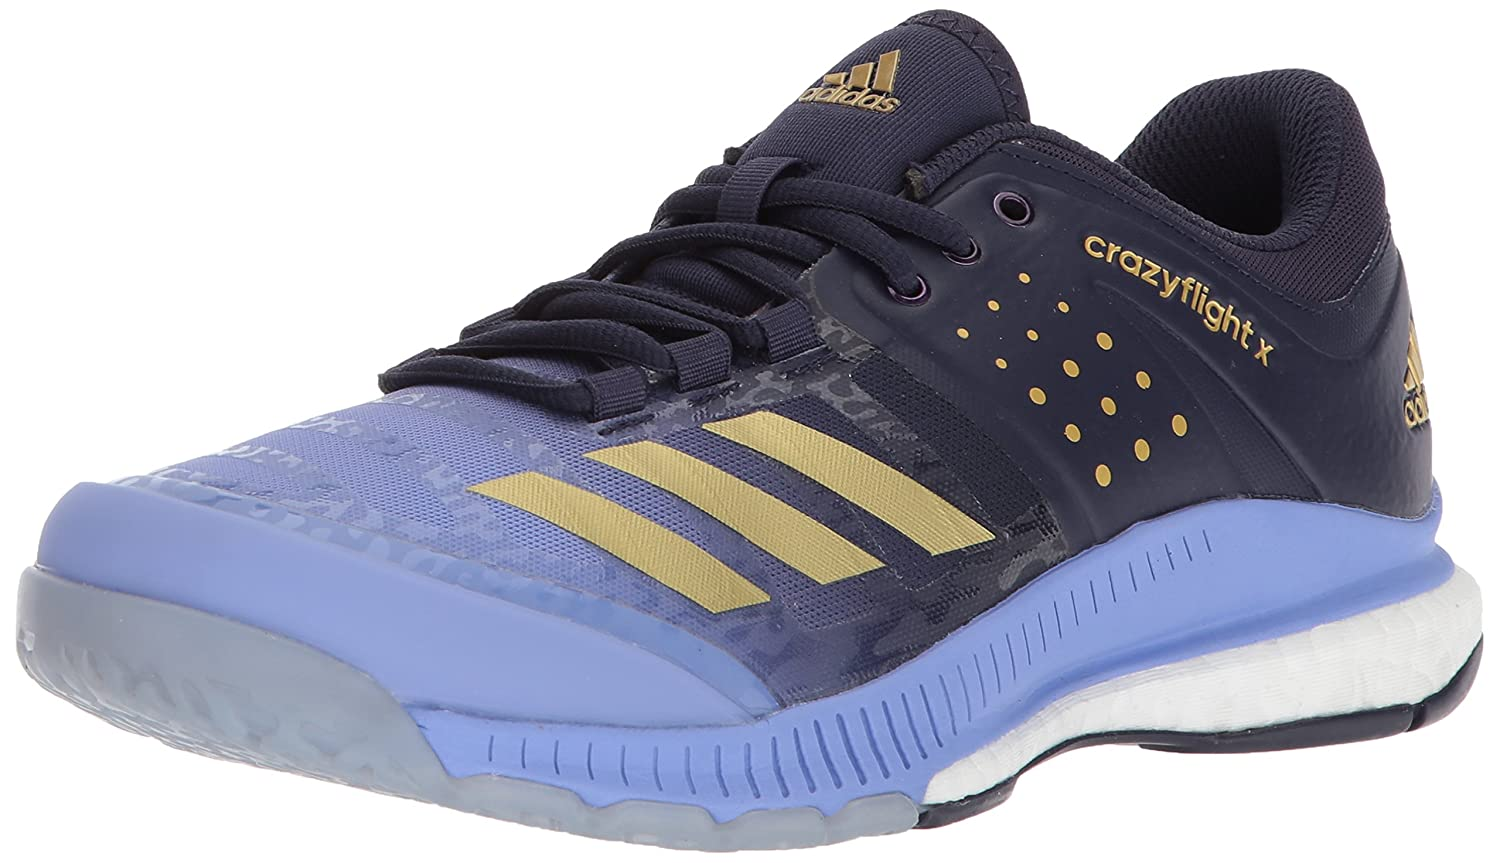 adidas Women's Crazyflight X W Volleyball Shoe B0719JYSP5 8.5 B(M) US|Chalk Purple/Metallic Gold/Noble Ink